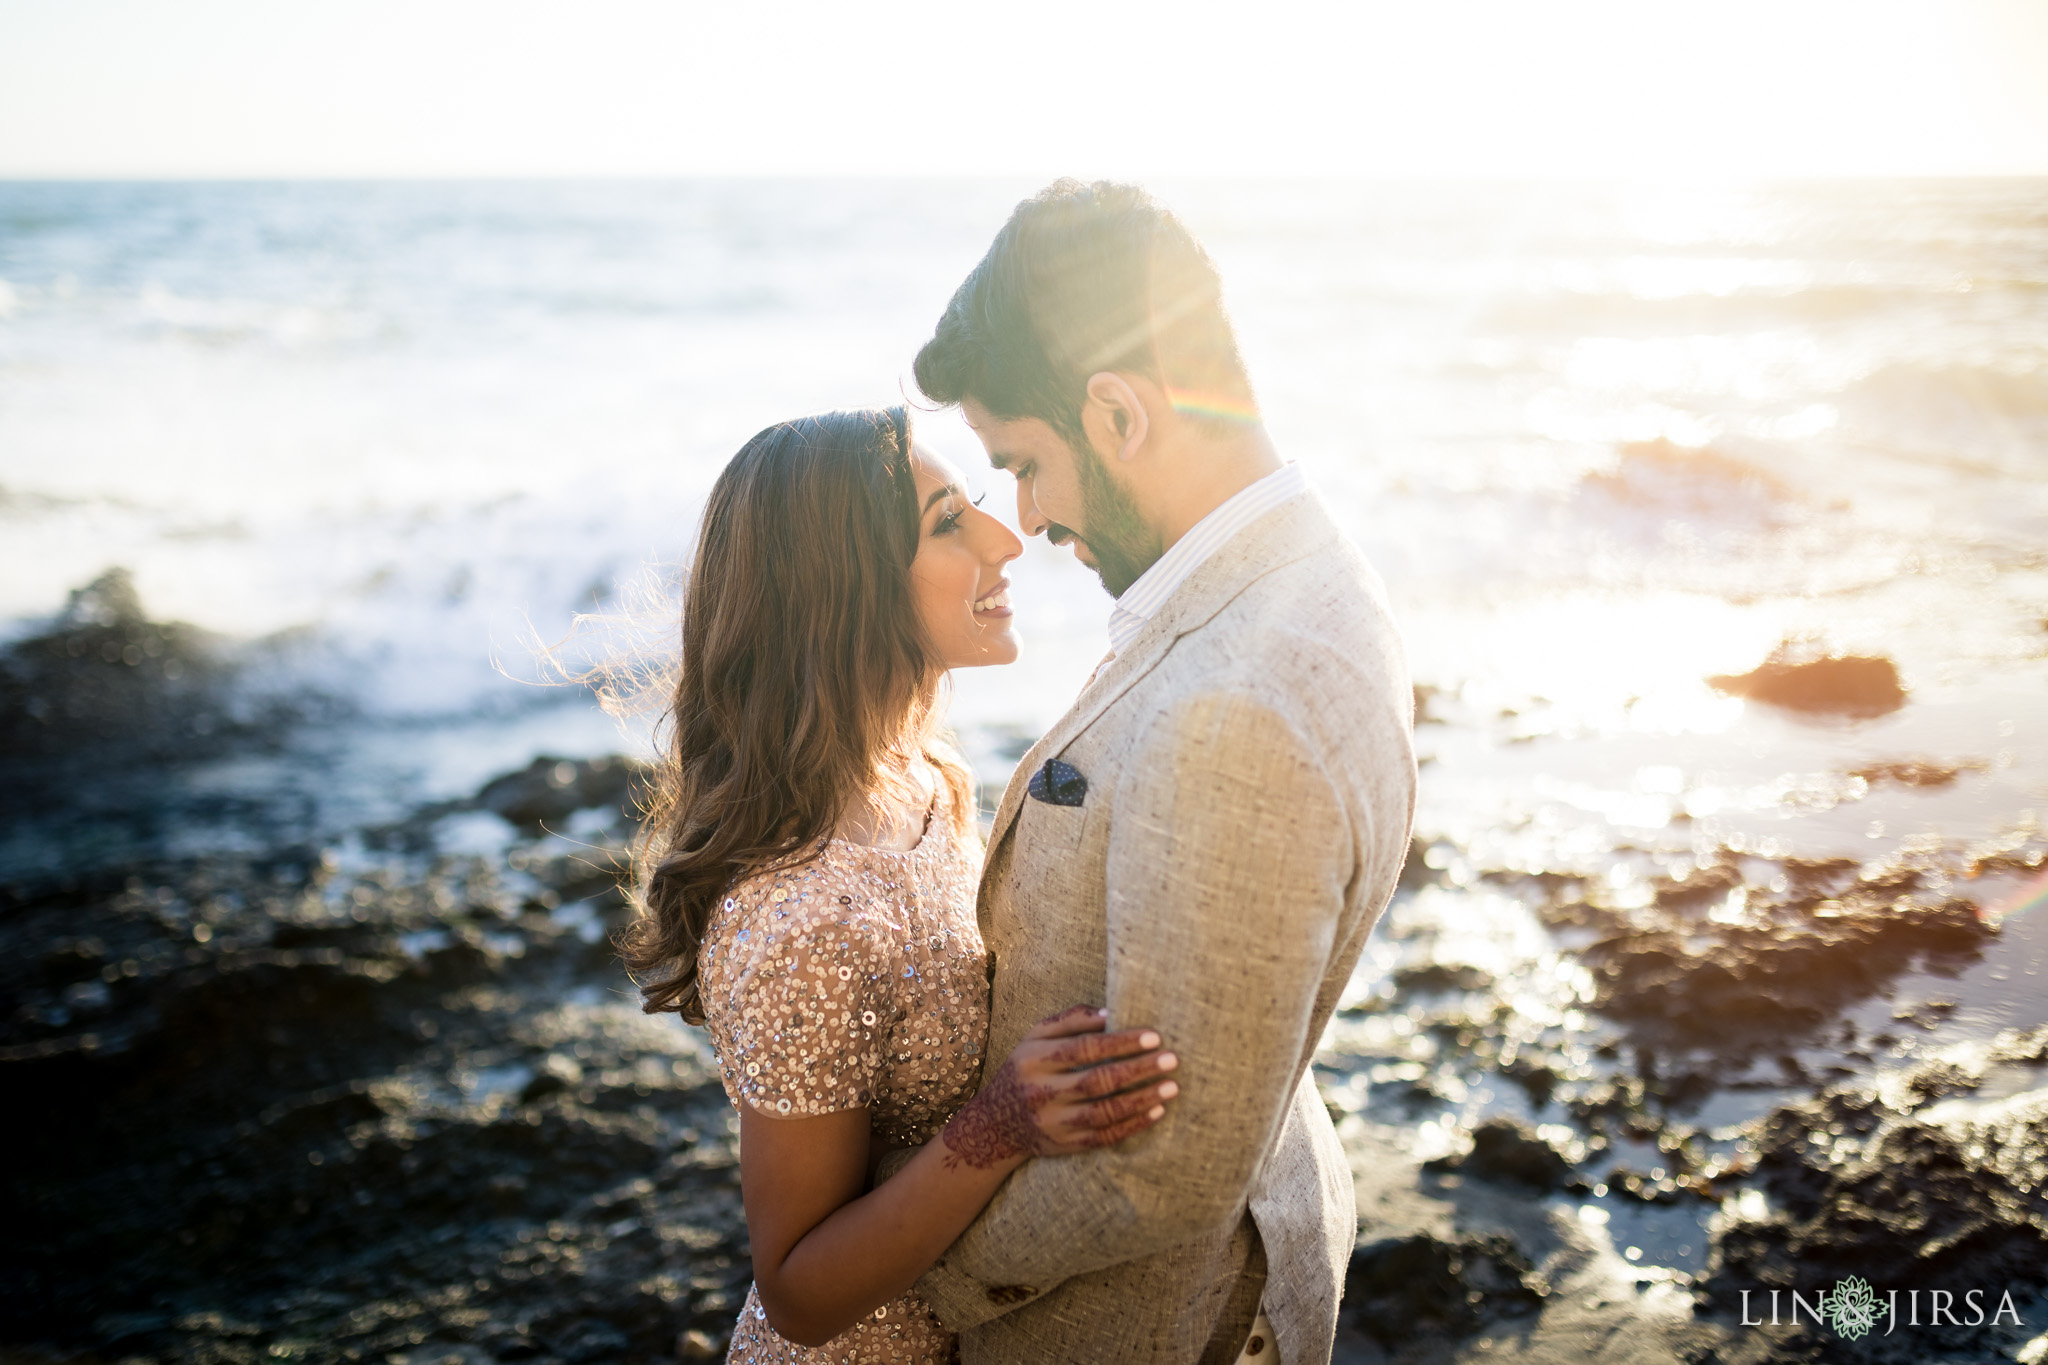 16-mission-san-juan-capistrano-engagement-photography